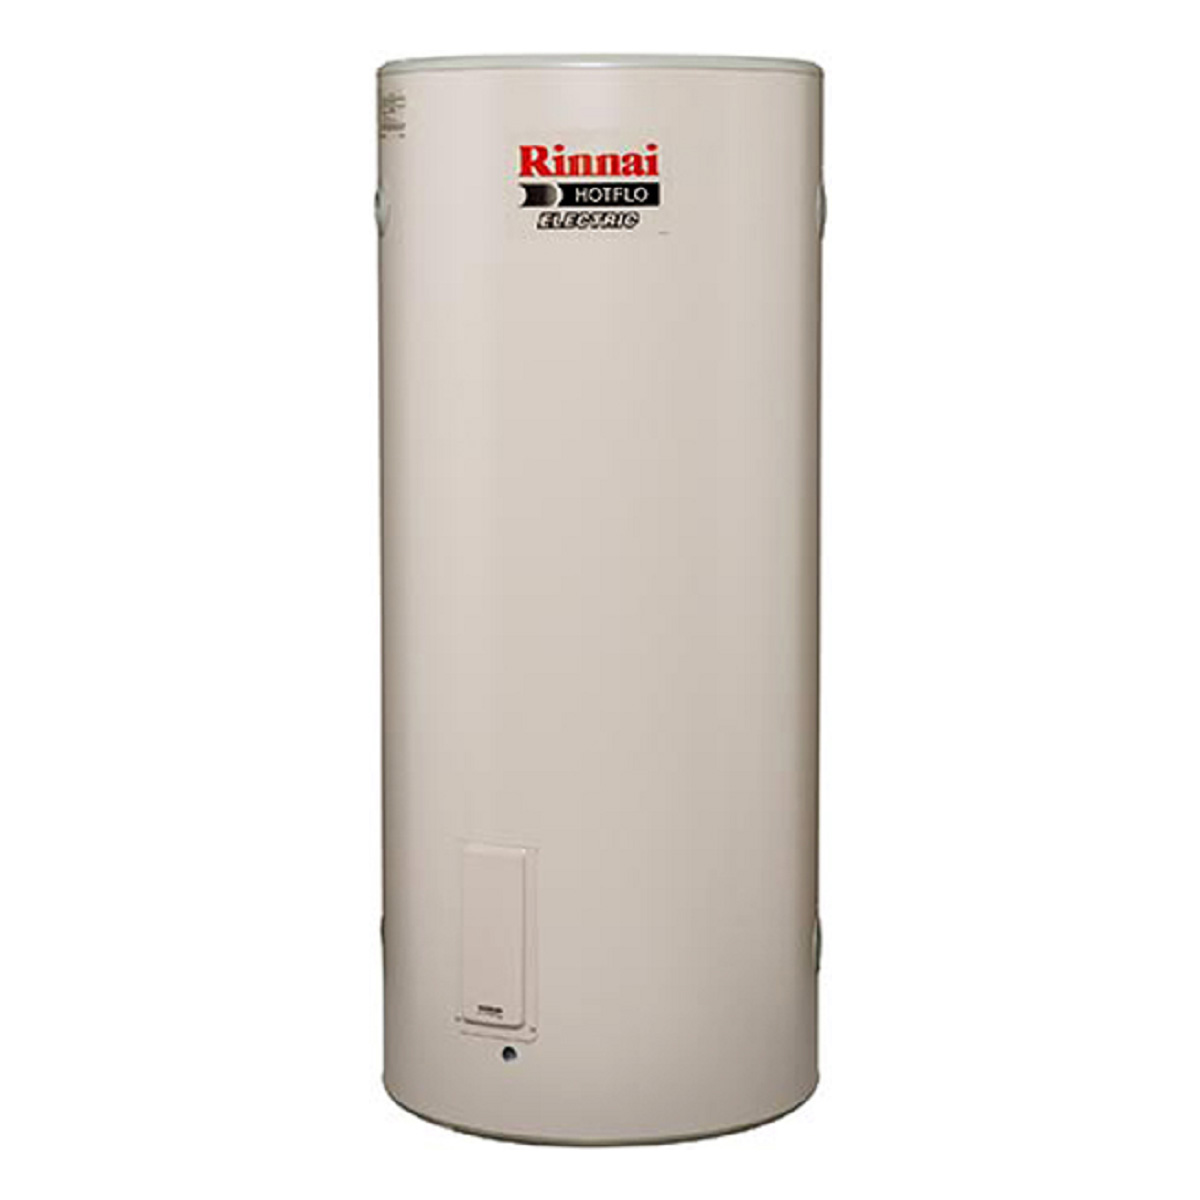 Rinnai Electric Tank EHF250S36